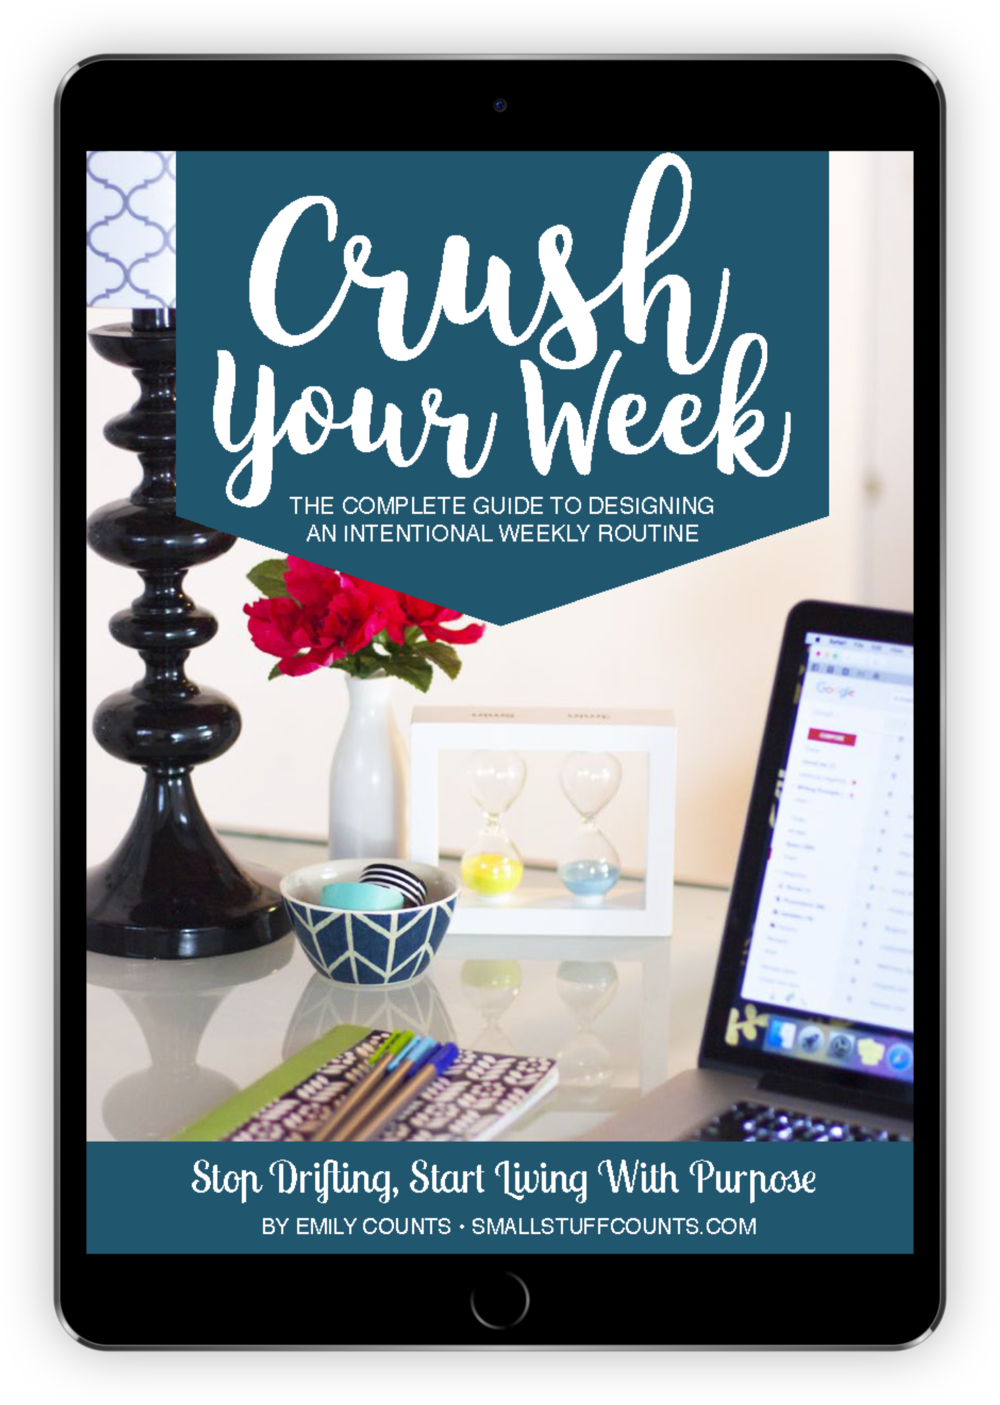 CrushYourWeek Mockup - Copy.png